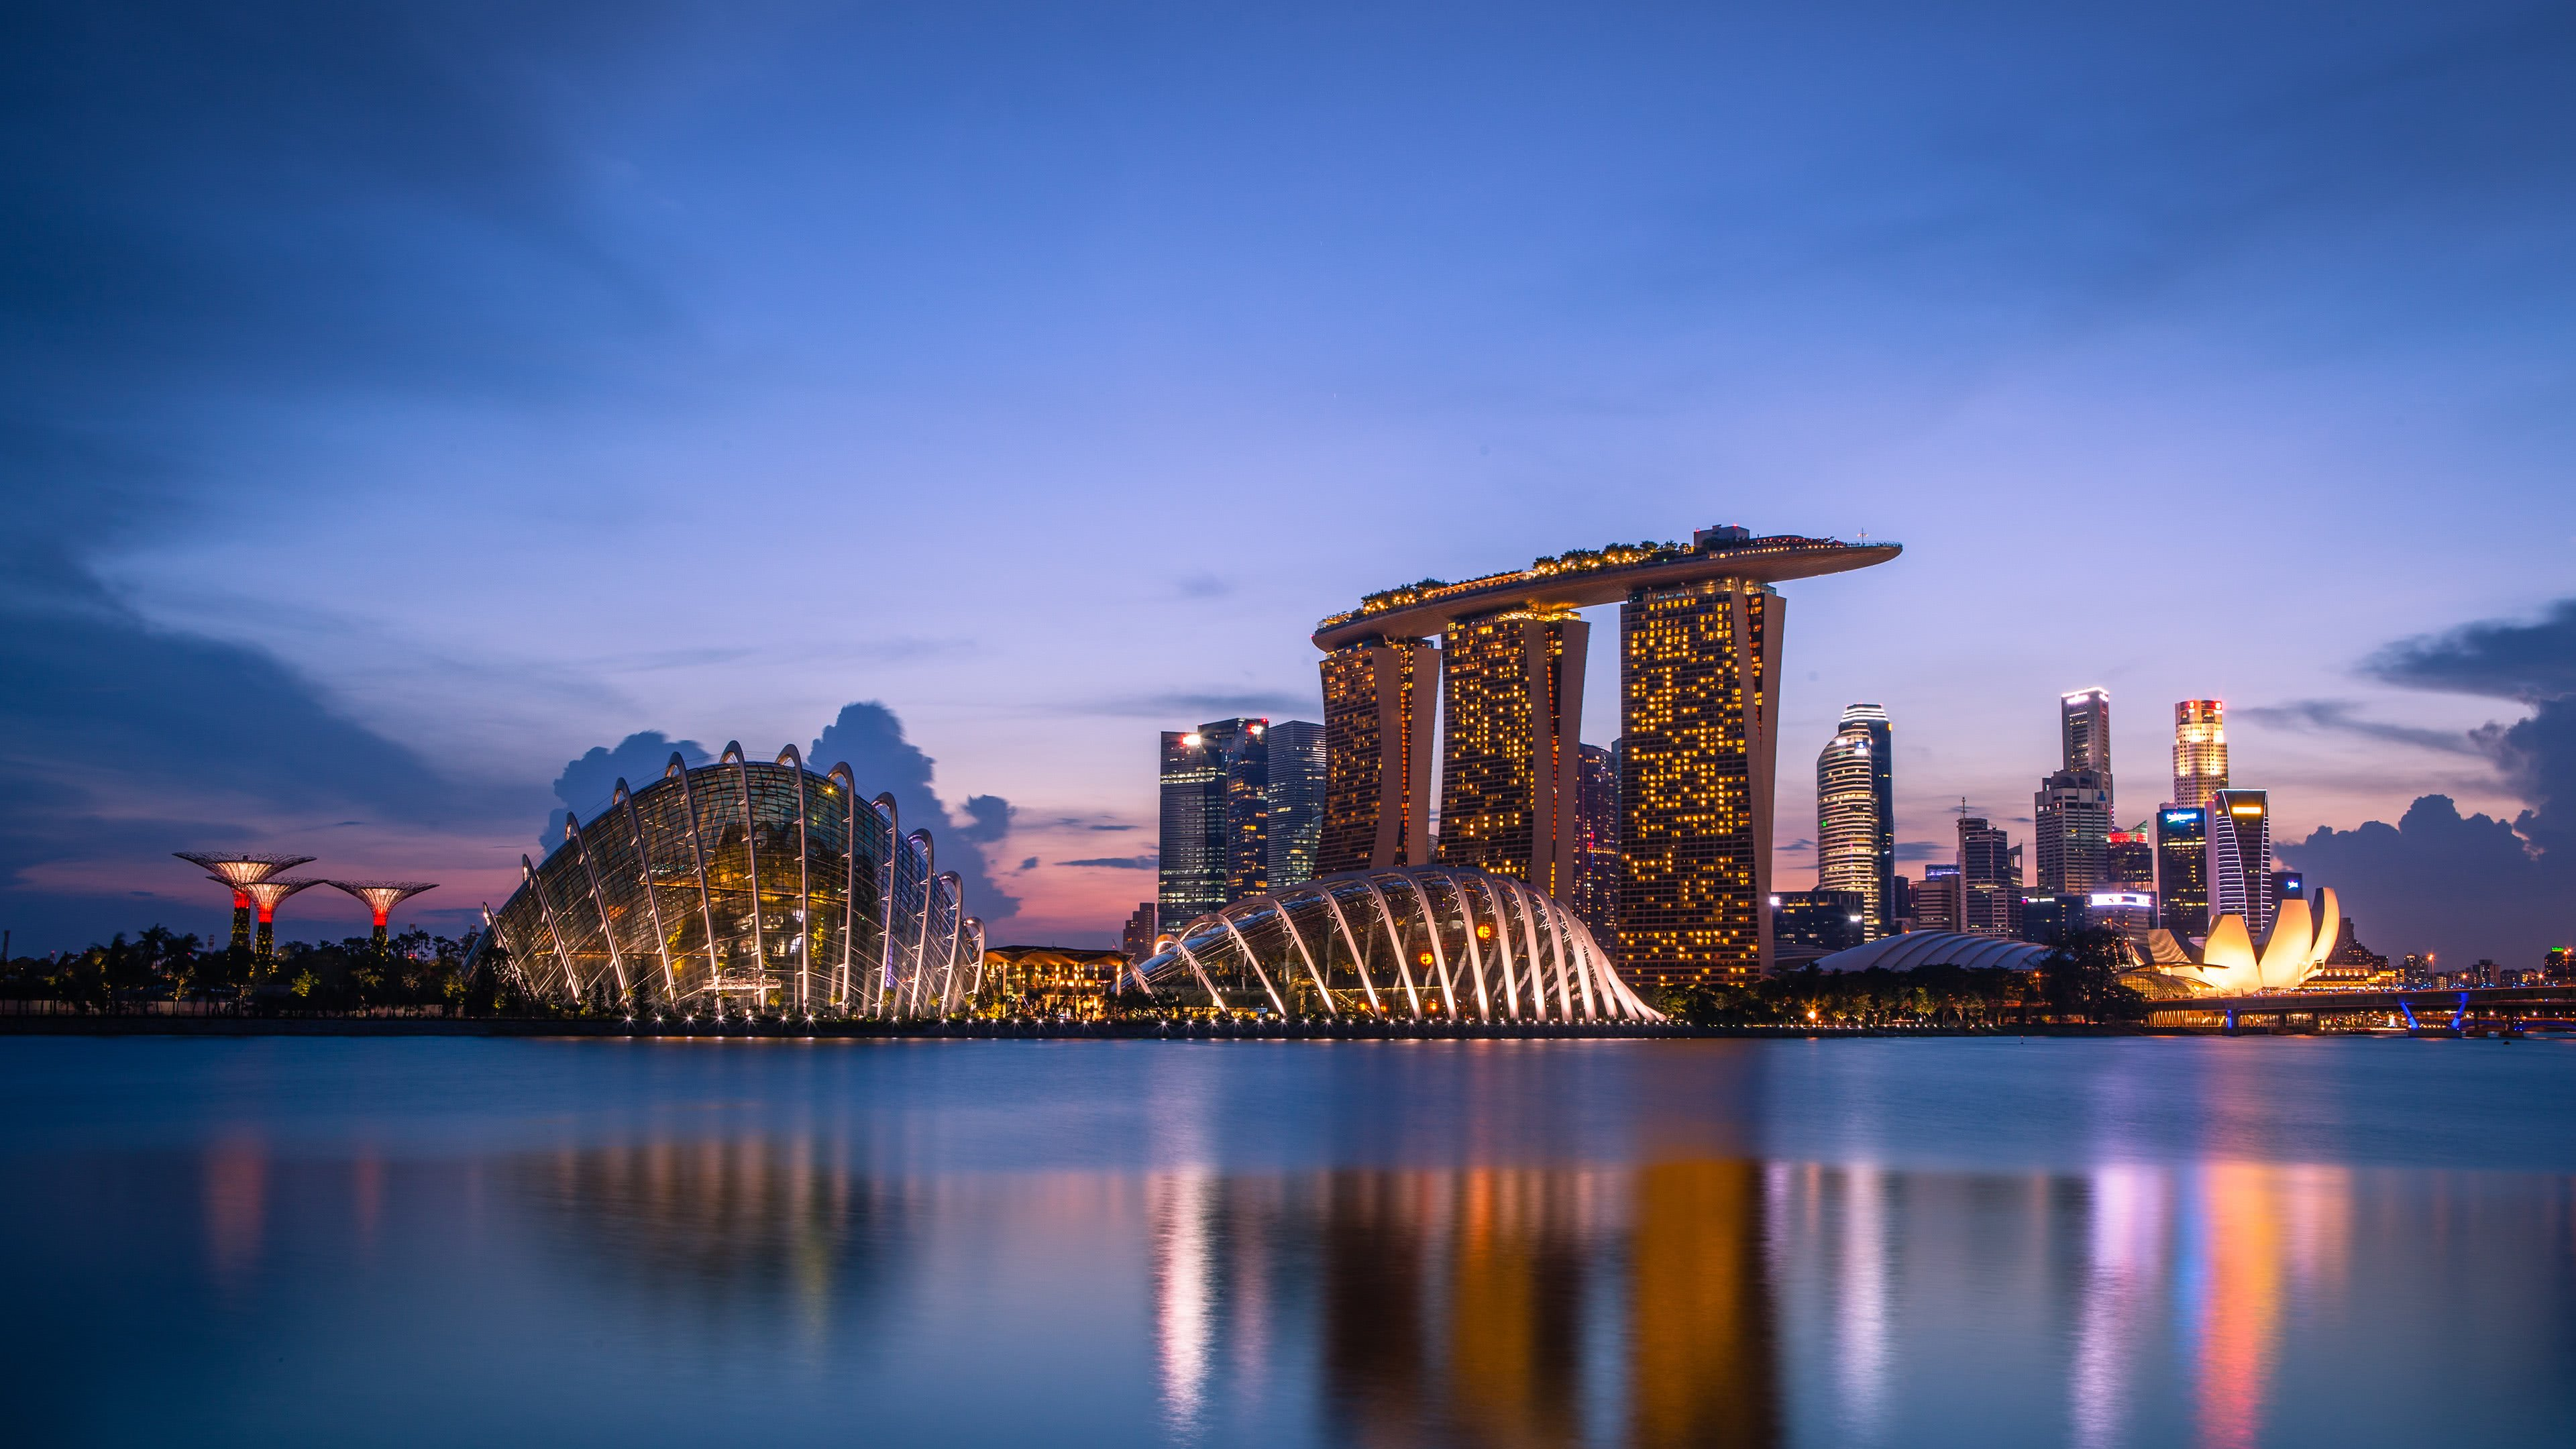 marina bay at night singapore uhd 4k wallpaper